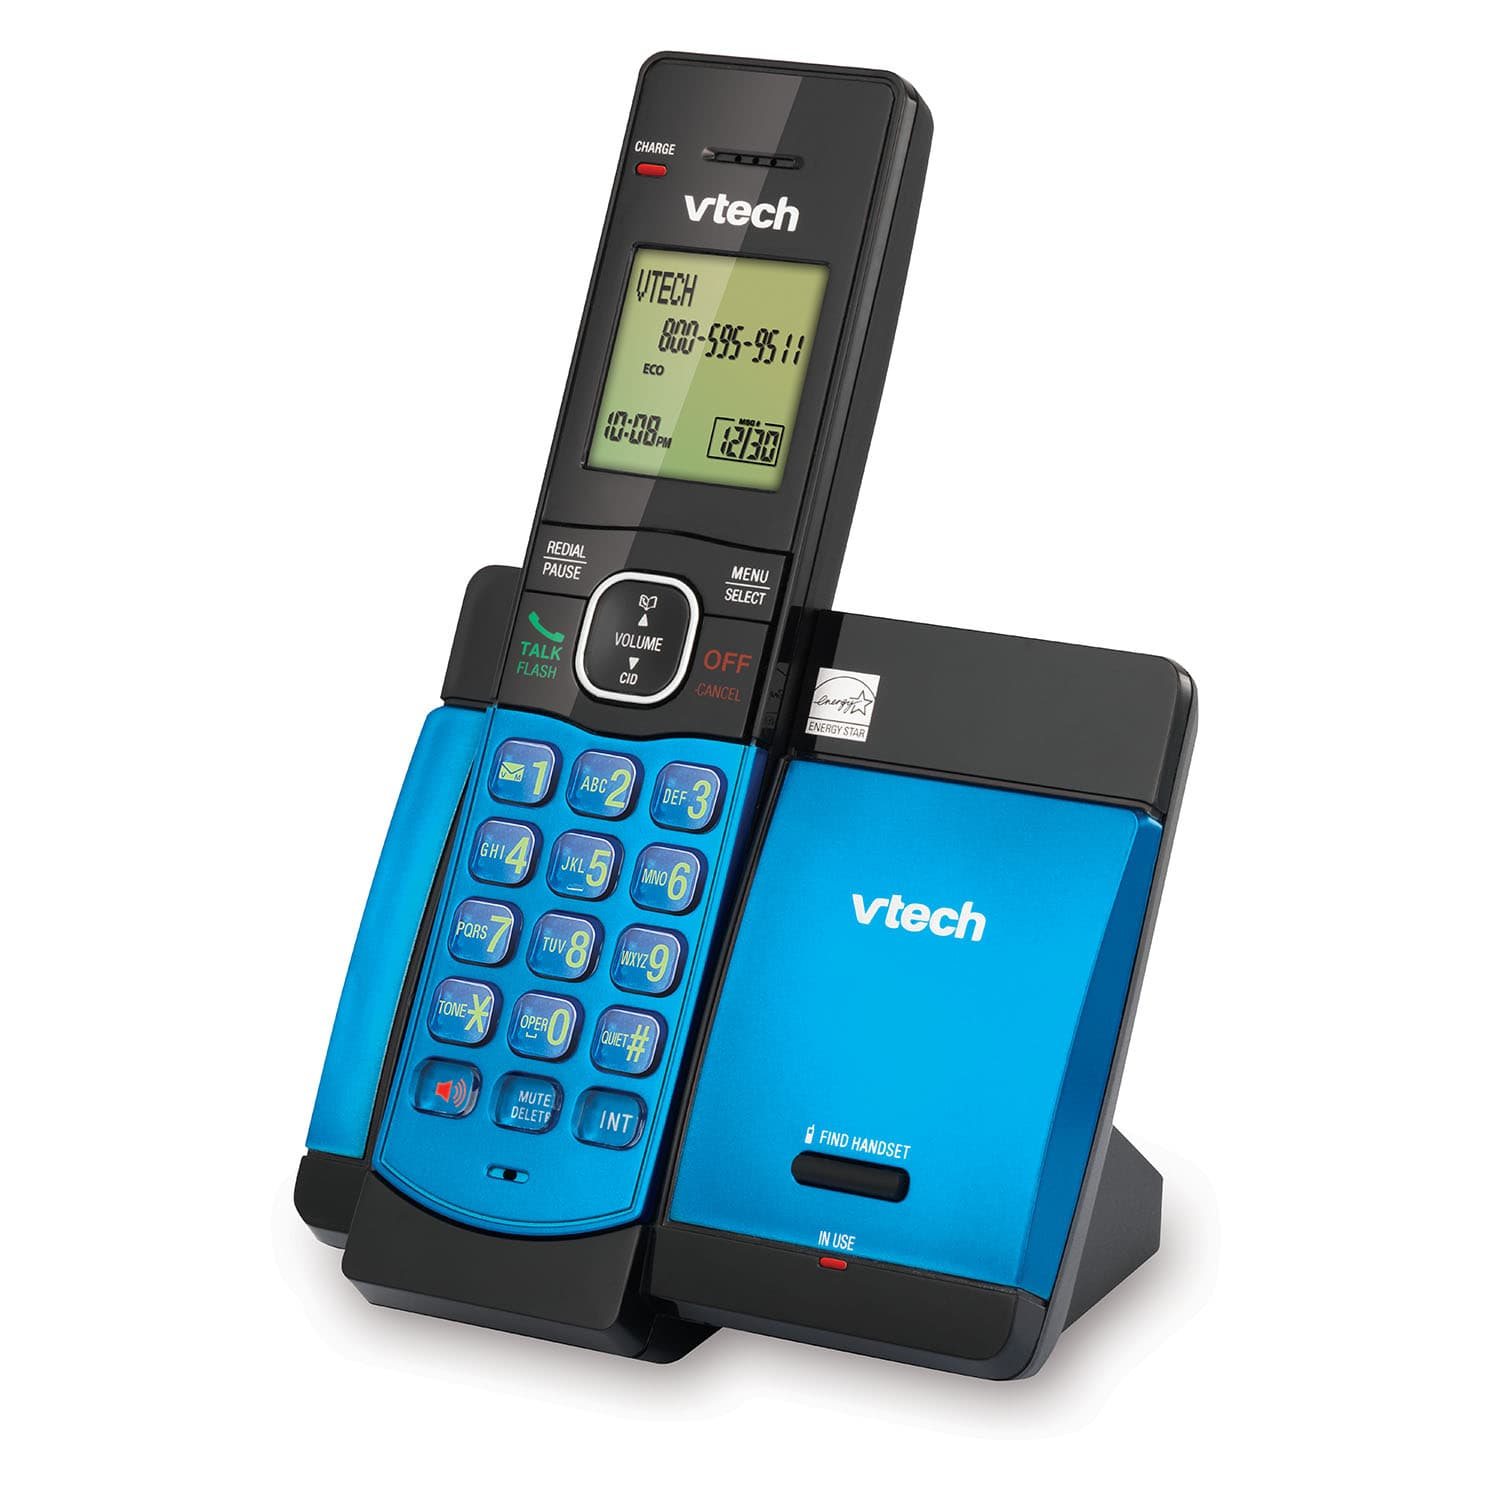 Blue Cordless Phone with Caller ID/Call Waiting